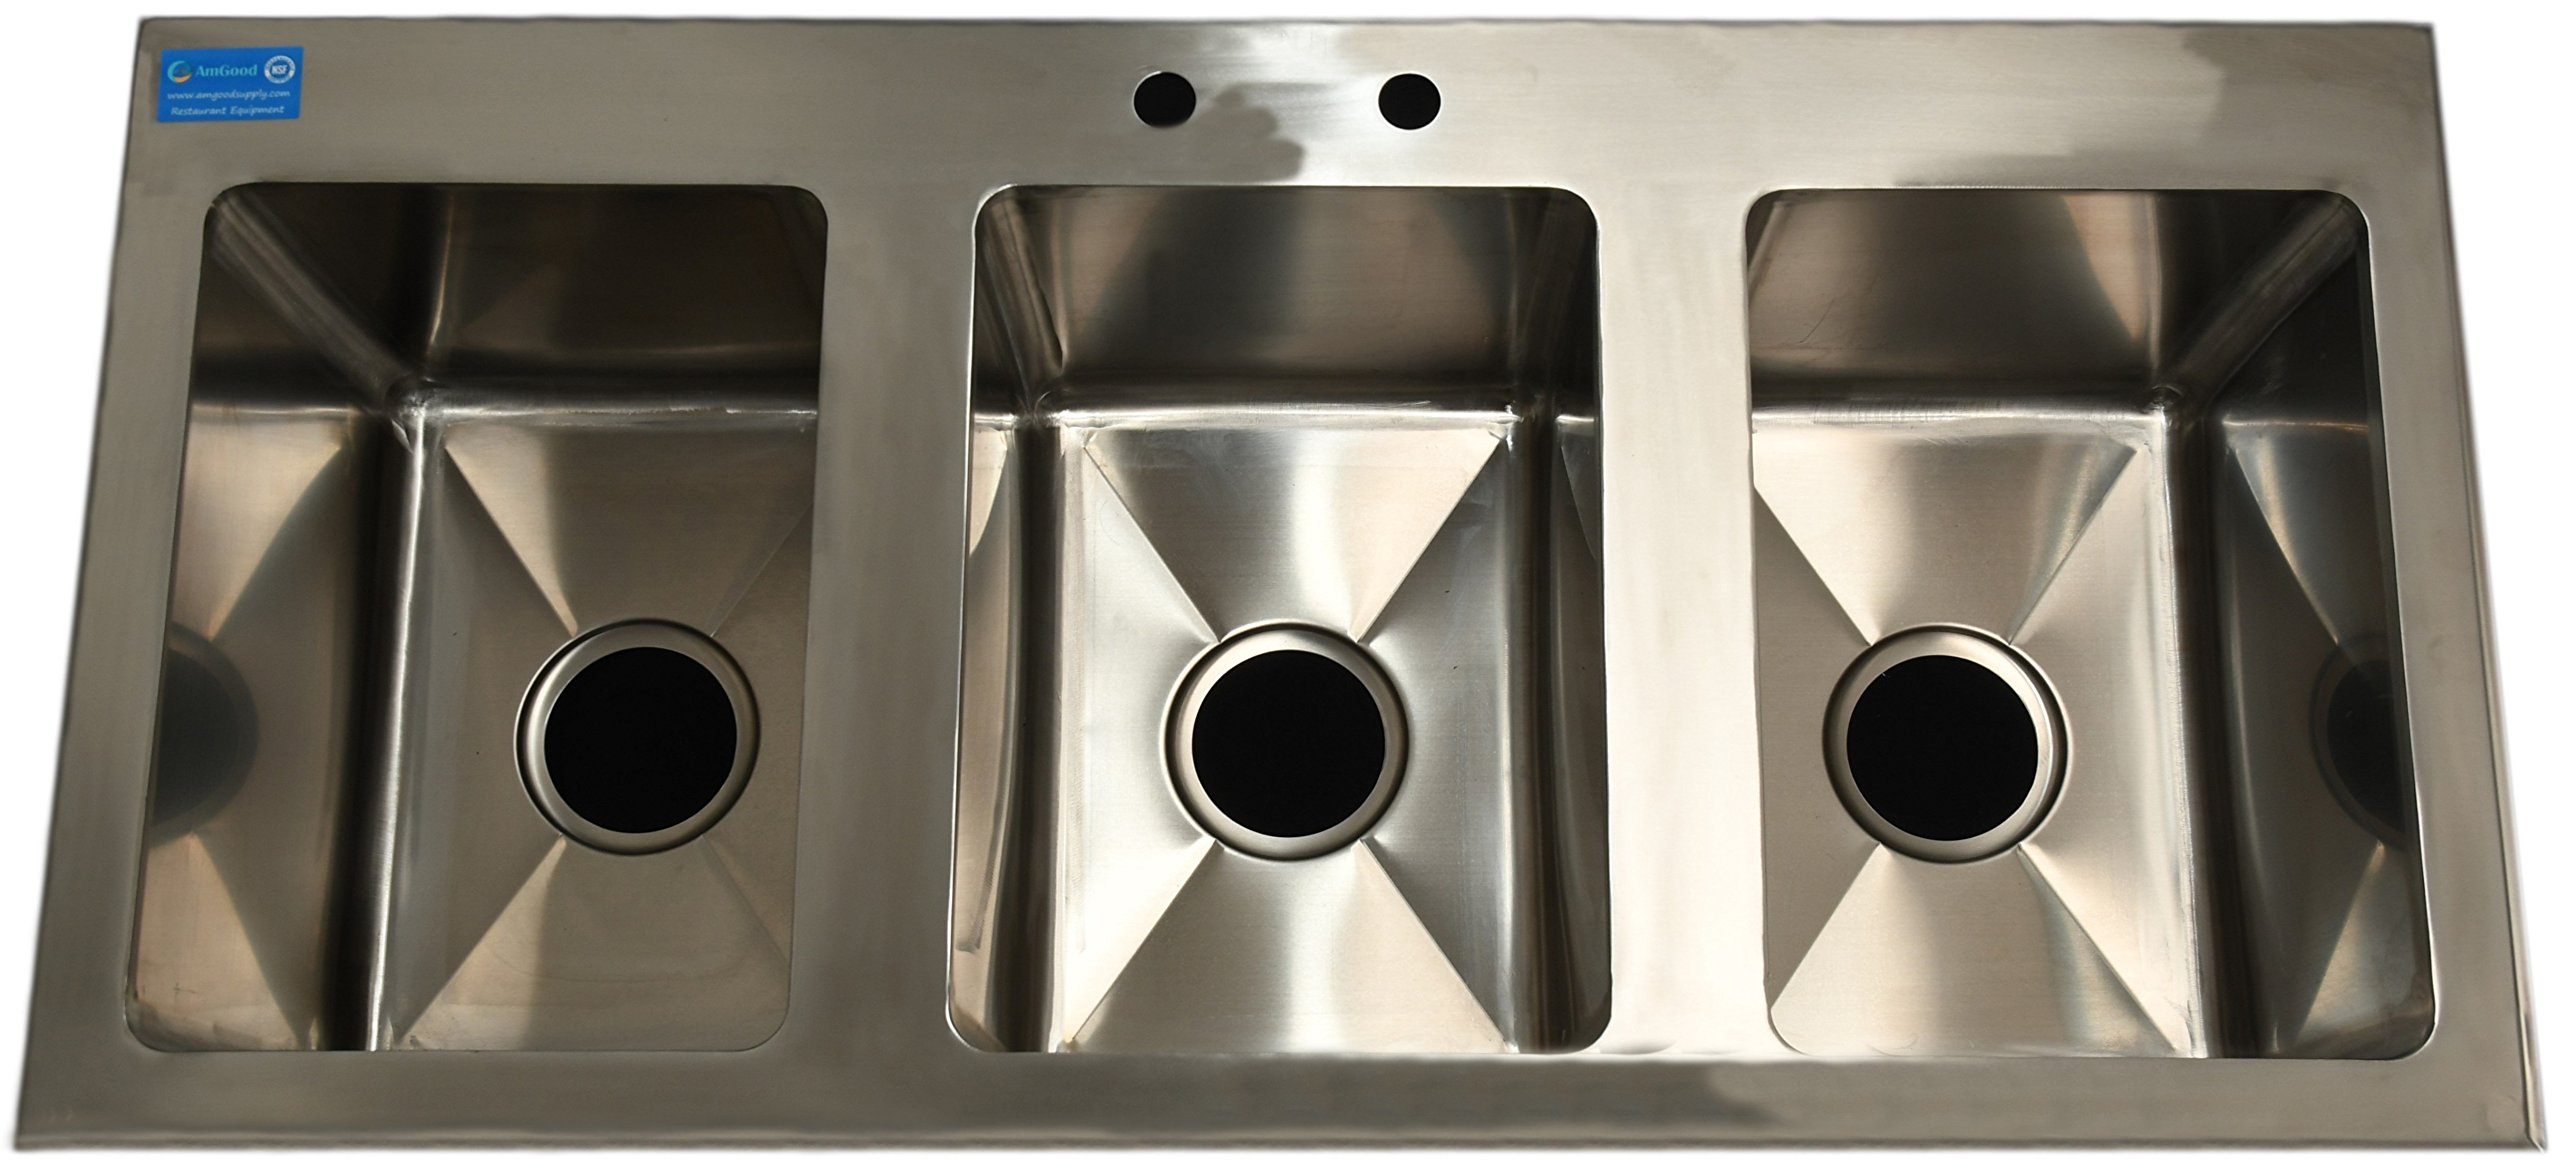 AmGood Stainless Steel Drop Sink - 3 Compartment Drop In Sink 10''x14''x10'' NSF Certified (10'' x 14'' x 10'' Sink)